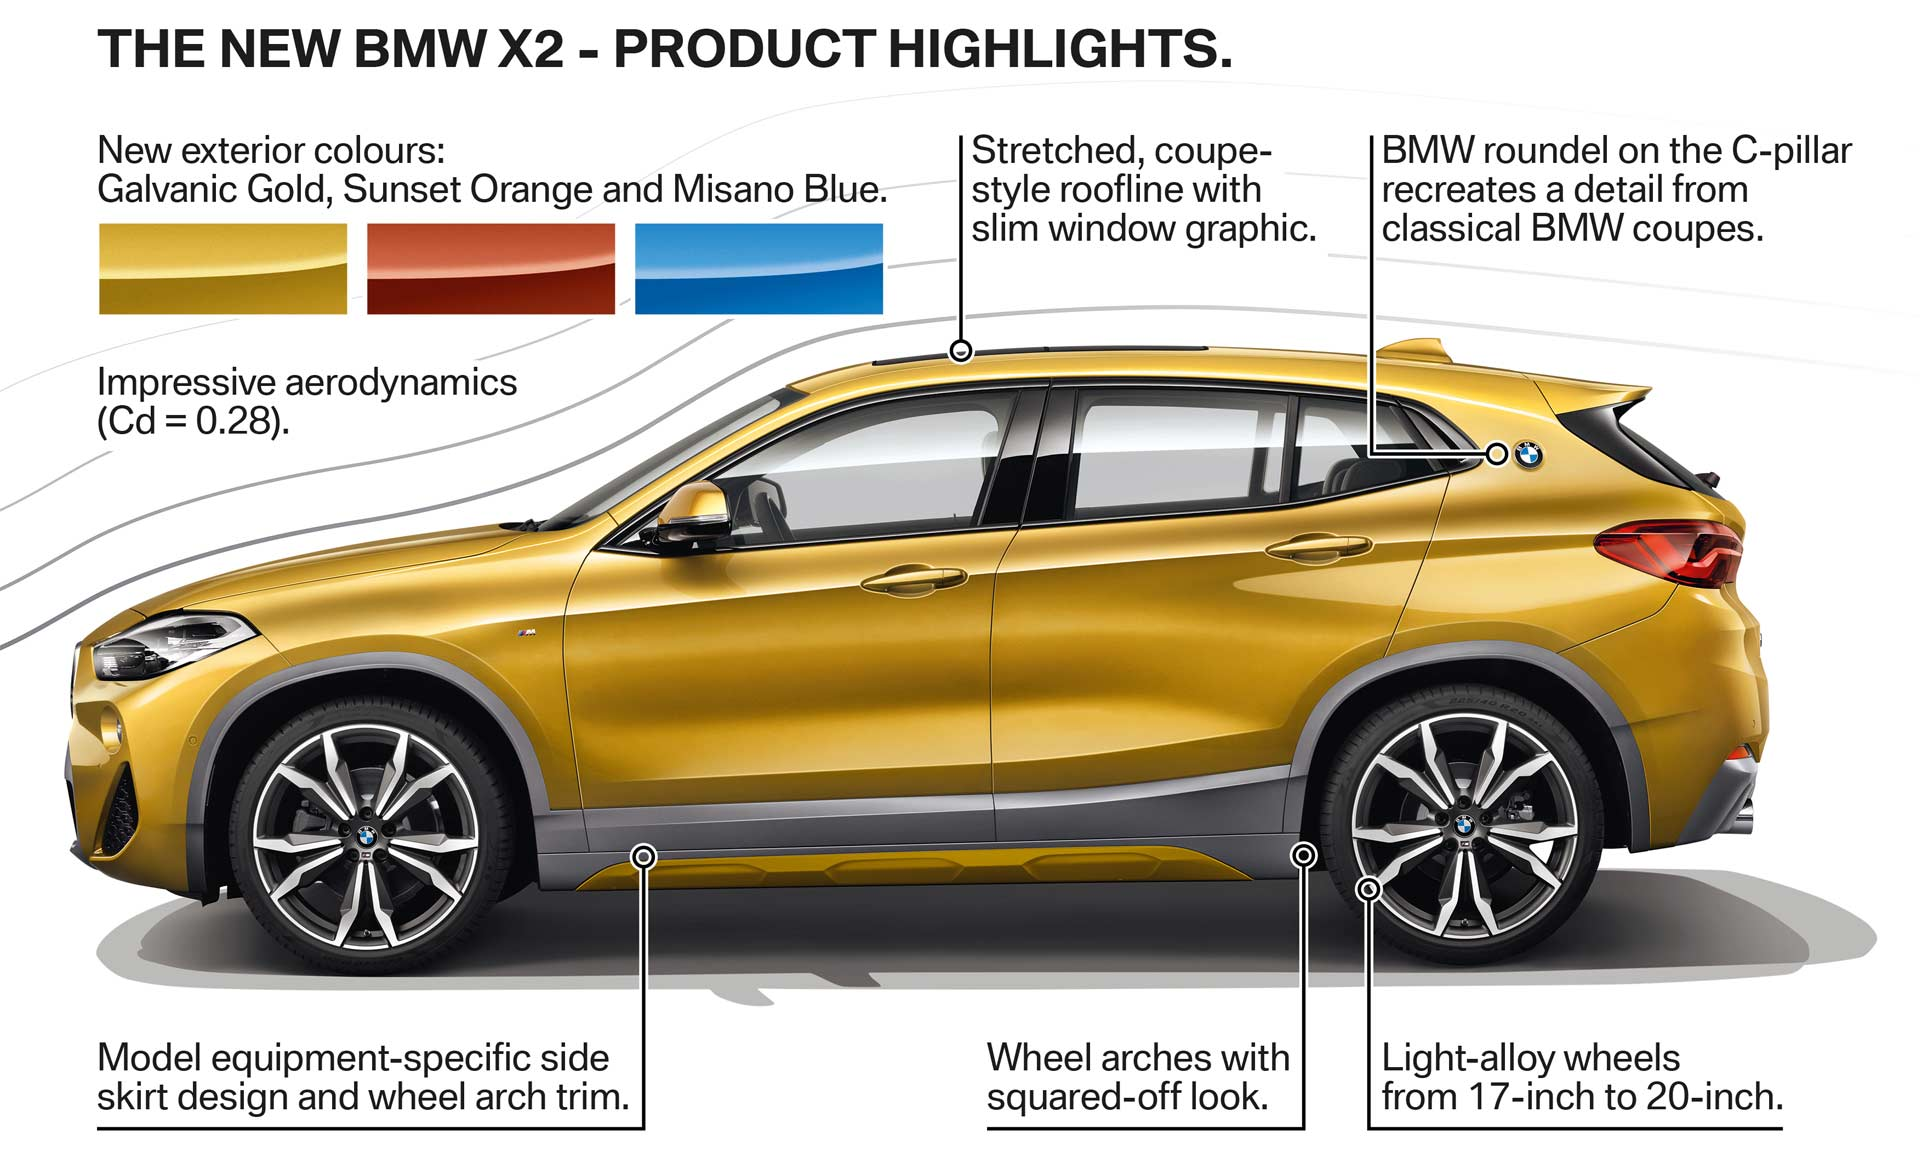 2018-BMW-X2-product-highlights_3